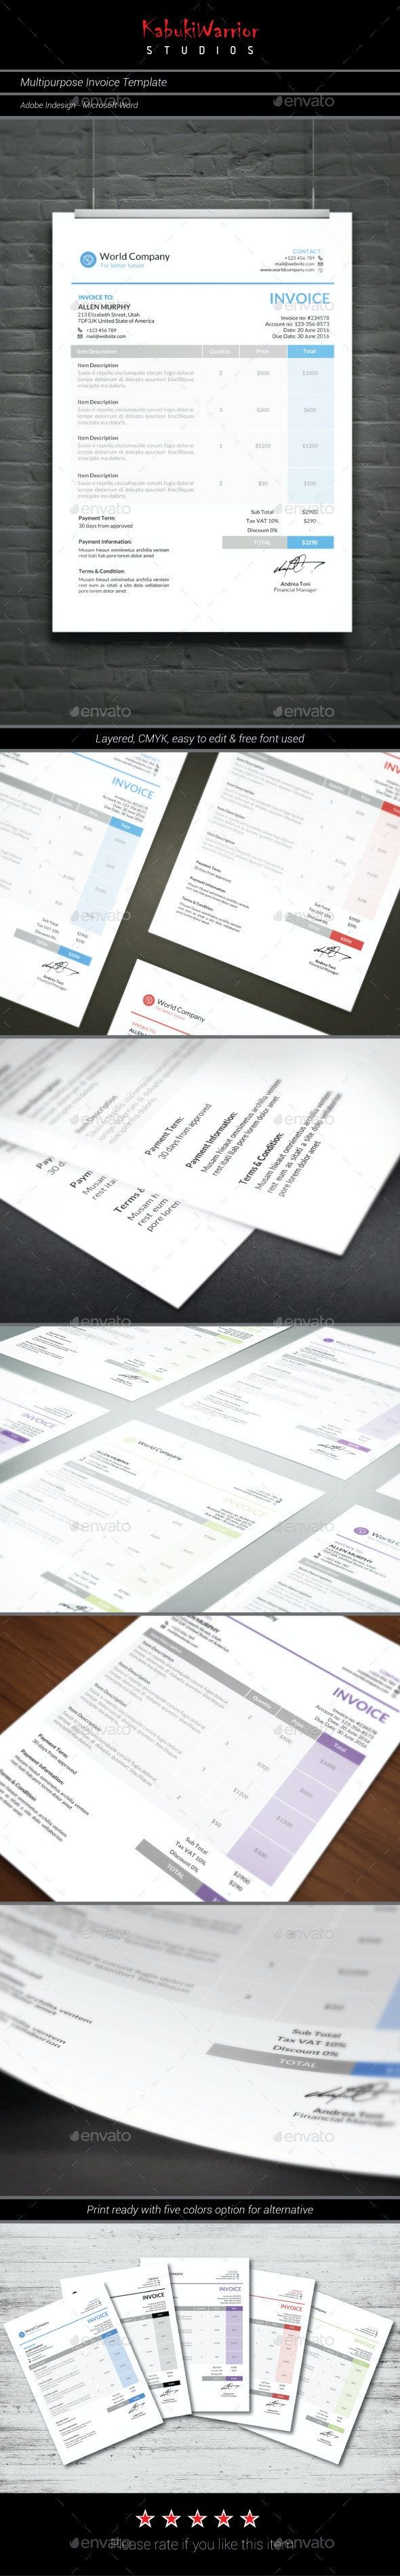 Multipurpose Invoice Template - Proposals & Invoices Stationery